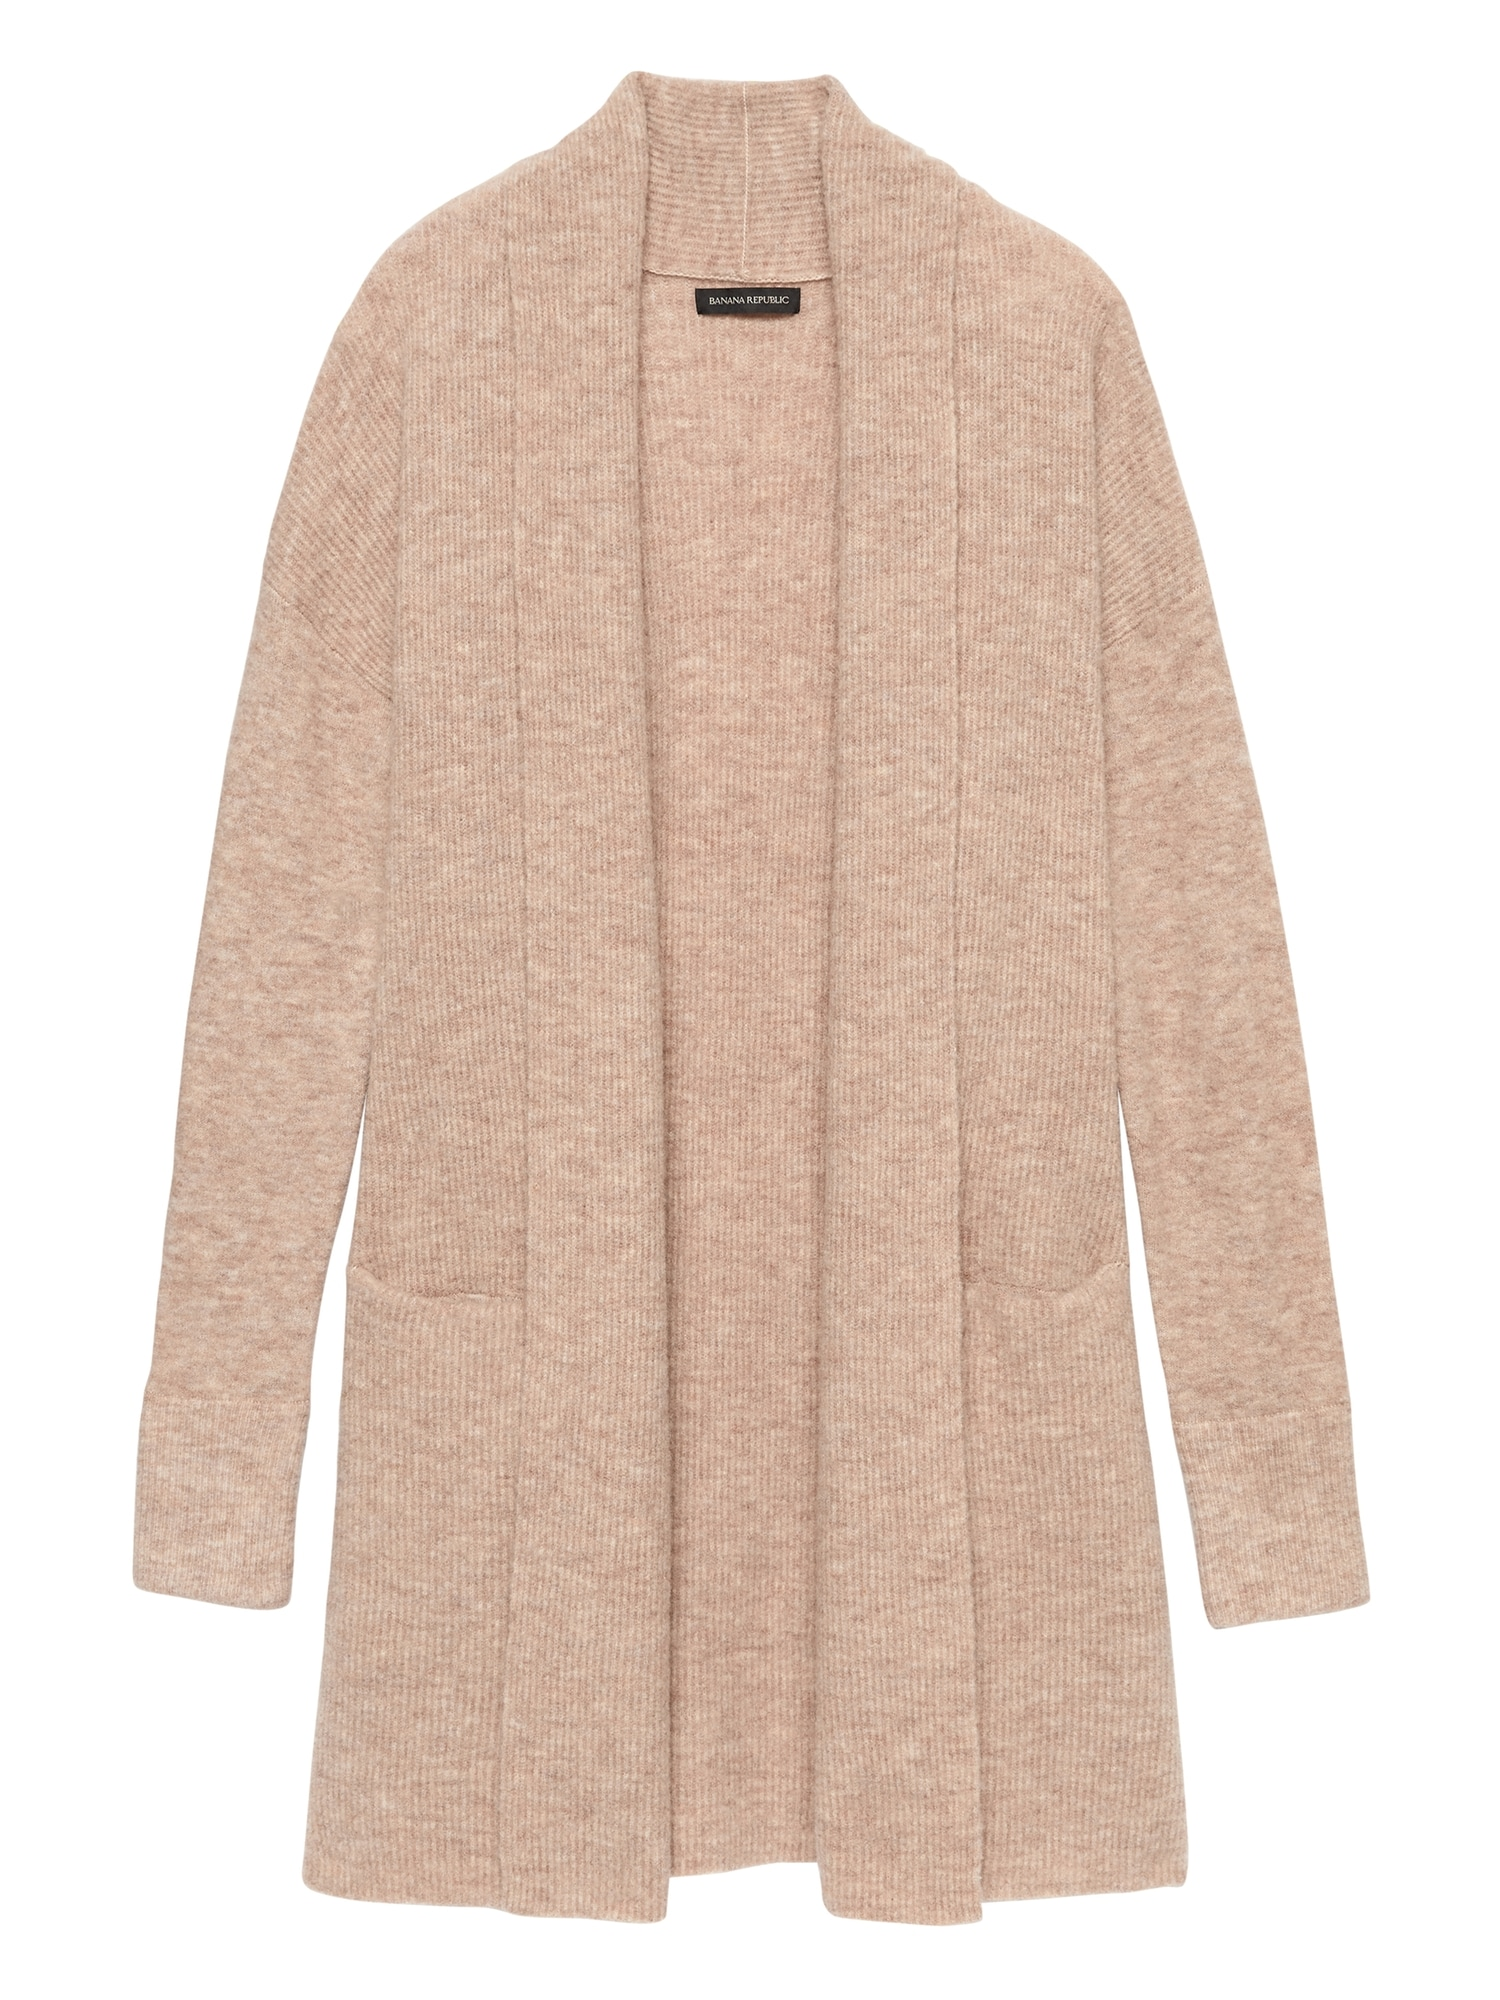 6a5a9bc1ced Aire Long Cardigan Sweater